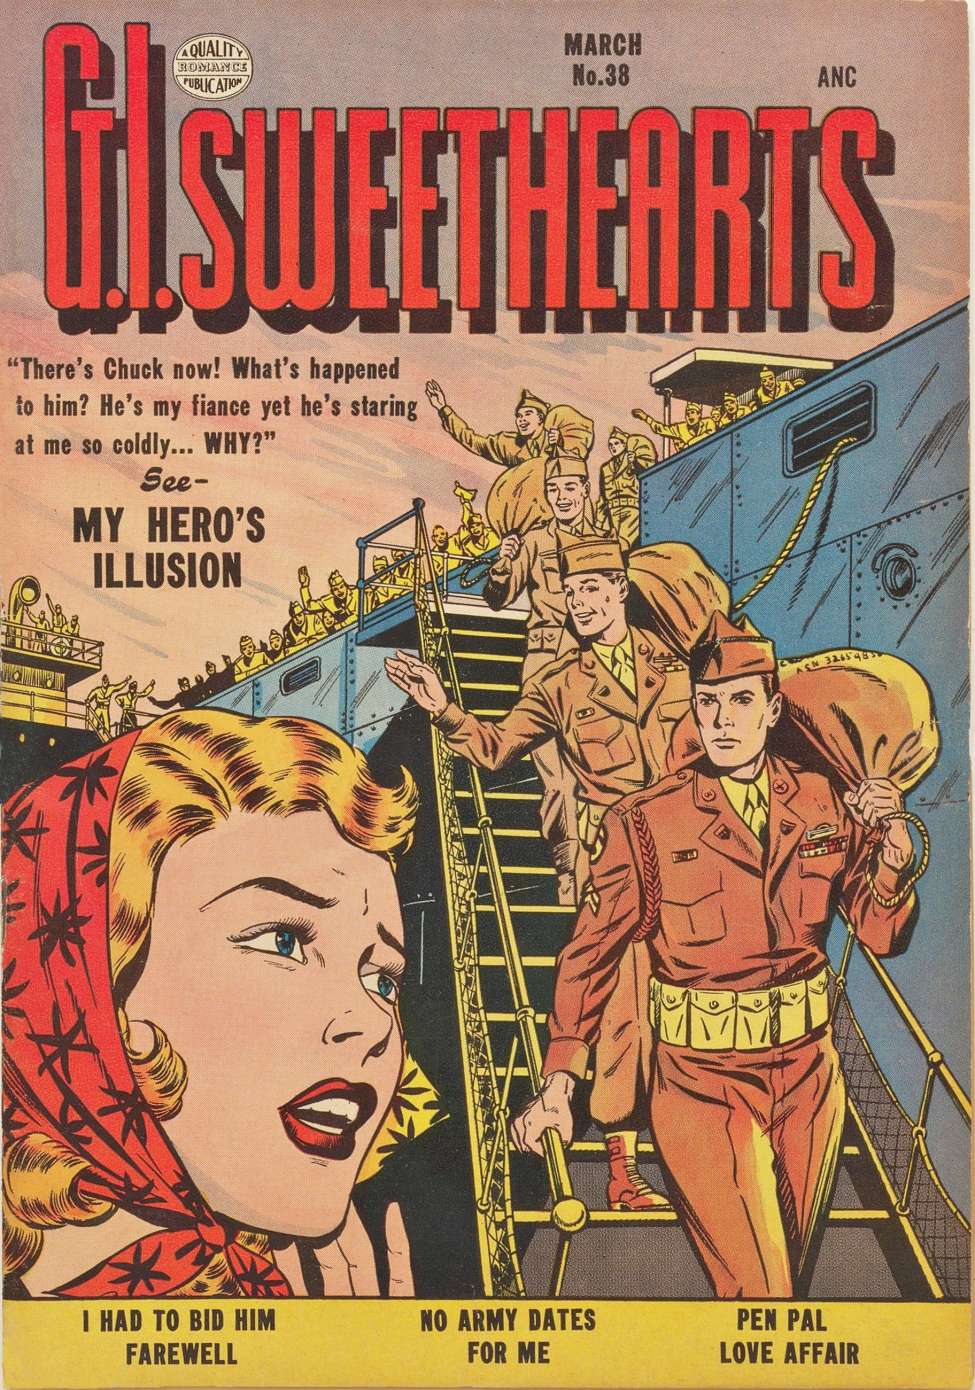 Comic Book Cover For G.I. Sweethearts 38